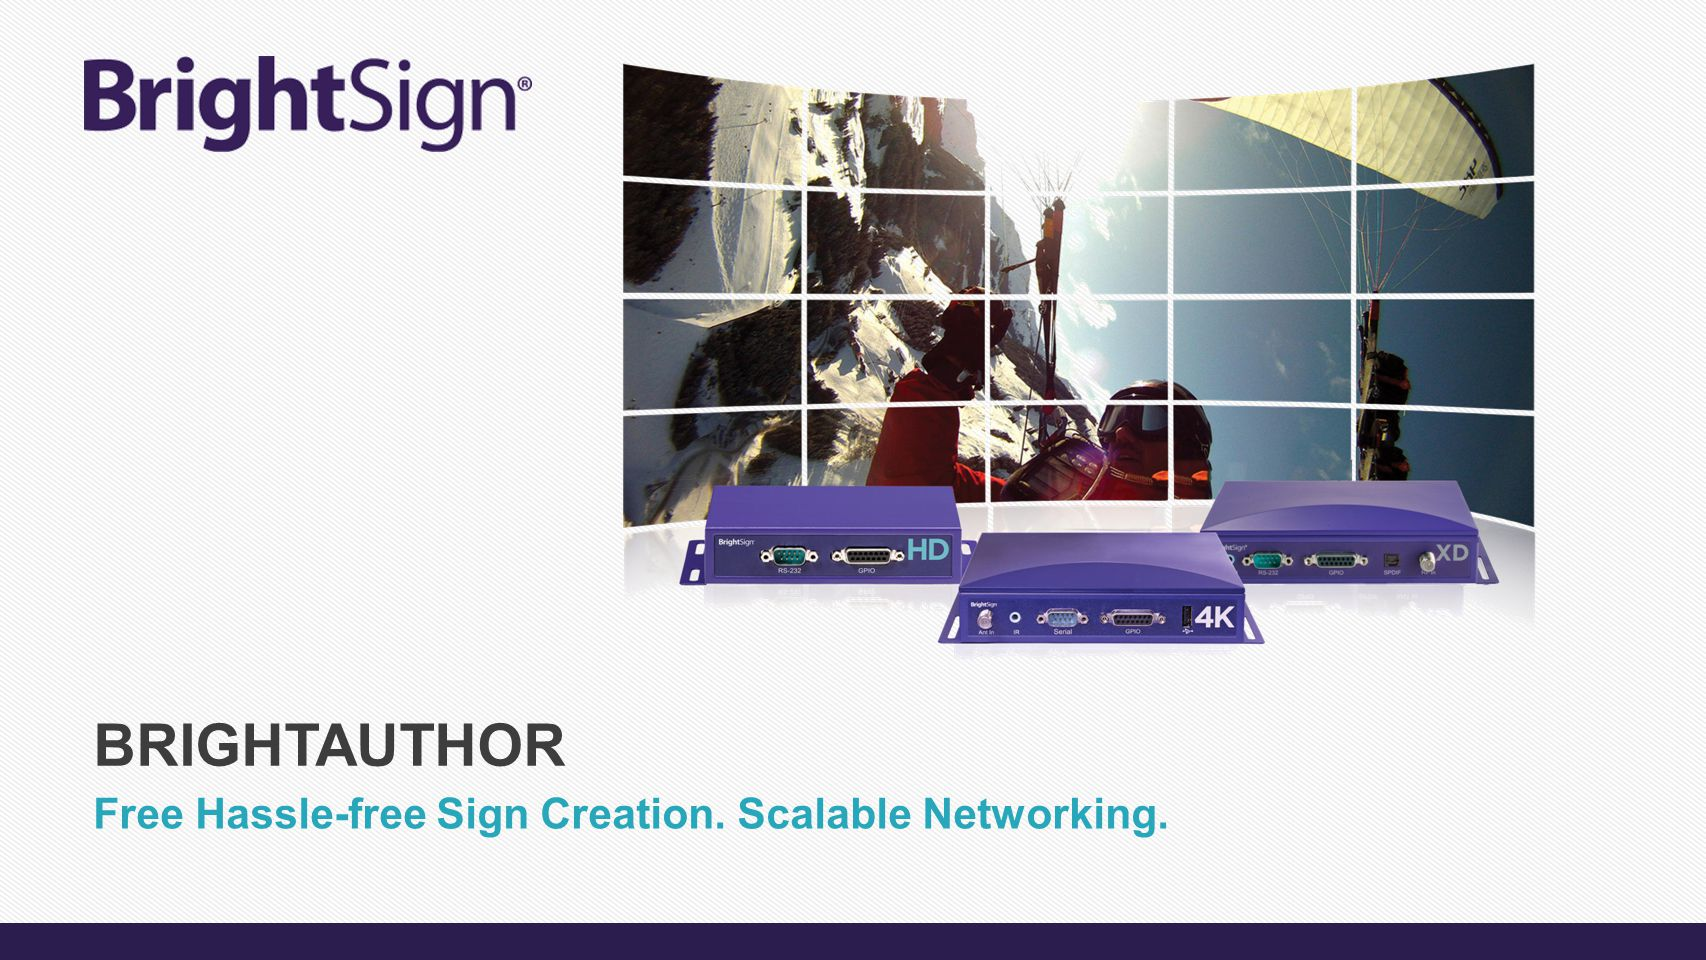 Free Hassle-free Sign Creation. Scalable Networking.